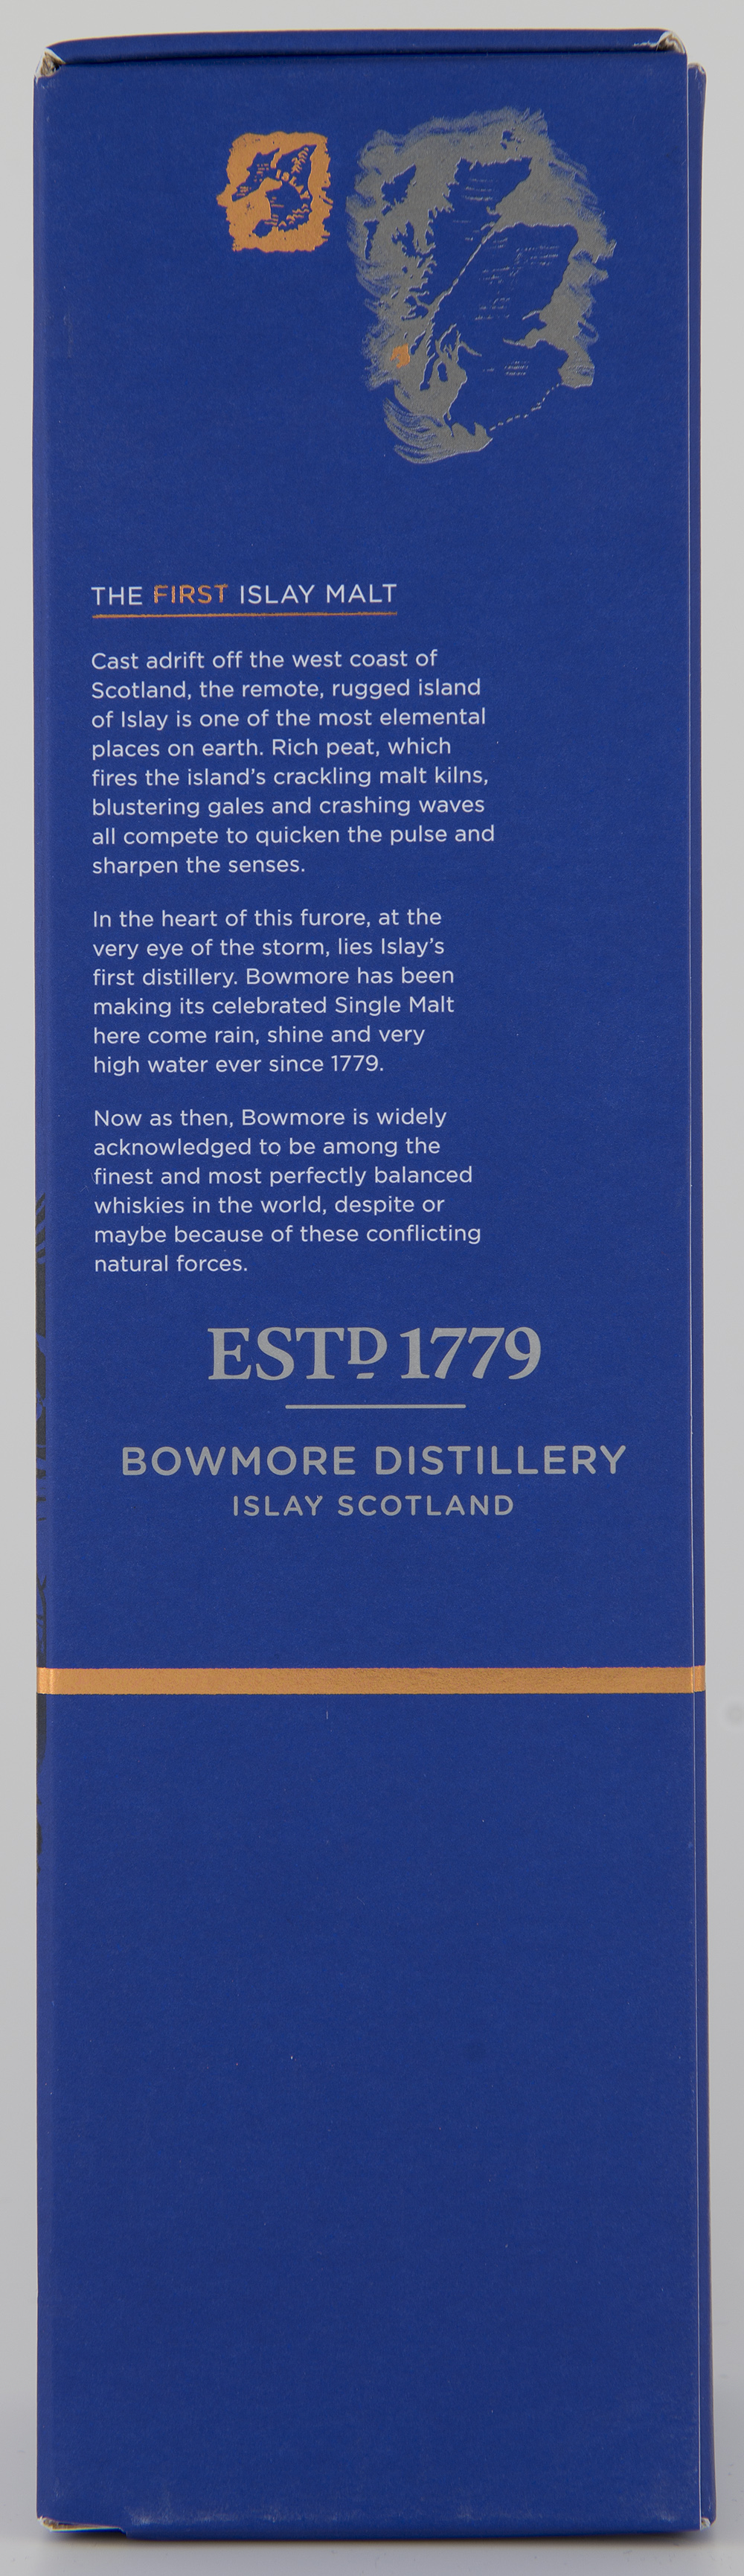 Billede: DSC_3204 Bowmore Tempest Batch IV - box side.jpg